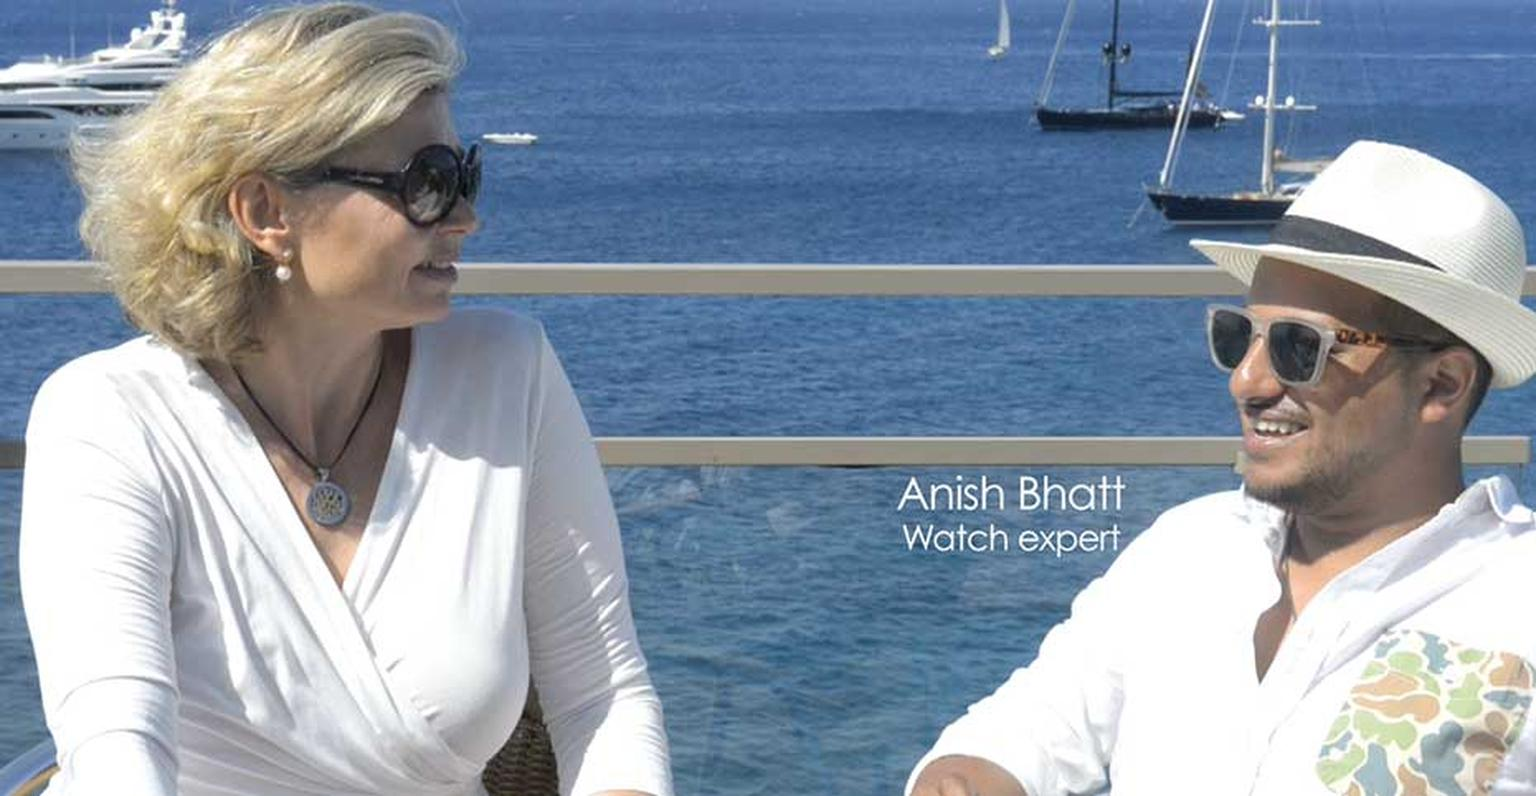 Anish Bhatt from Watch Anish speaks with The Jewellery Editor's Maria Doulton about Richard Mille watches and their strong identity, which fuses high-tech materials with style and design DNA